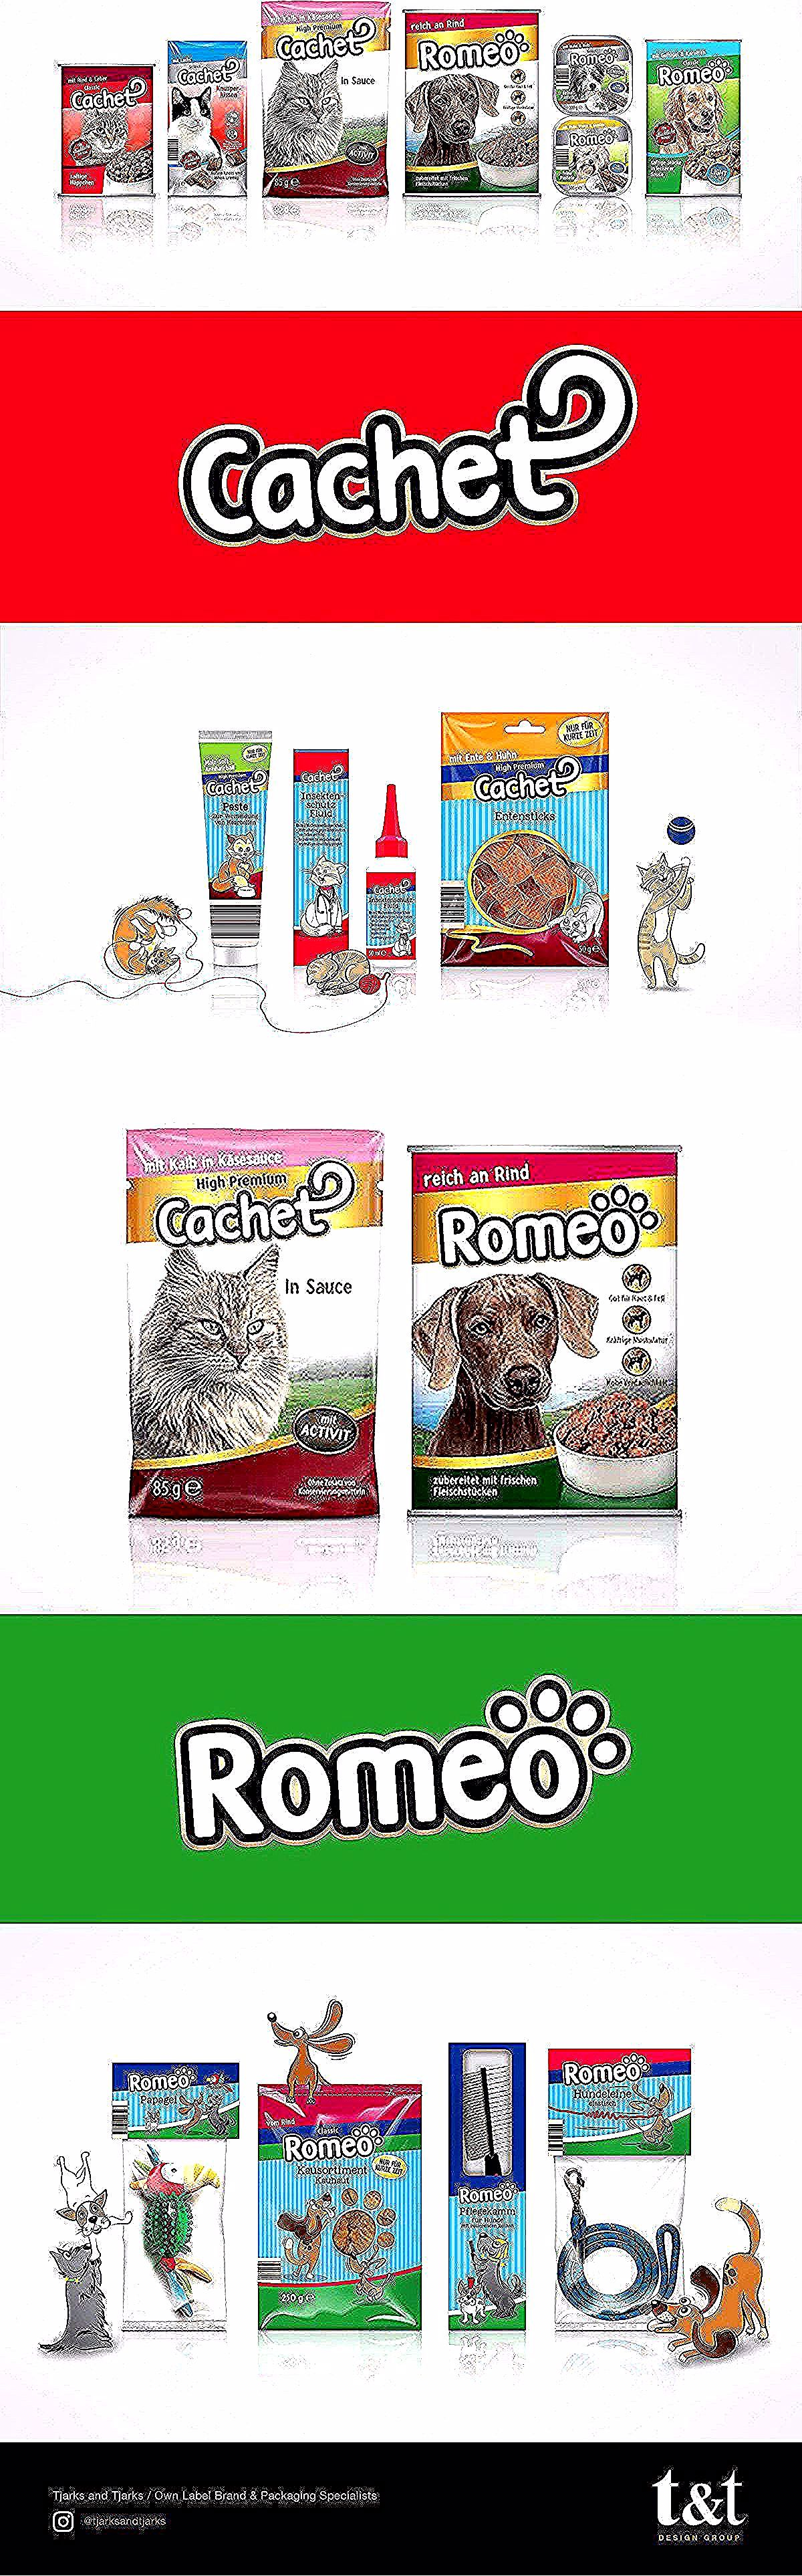 Romeo Cachet Pet Packaging Design Our Design Team Had To Develop A New Look For The Entire Aldi Sud Pet Food Ranges A Food Animals Packaging Design Aldi